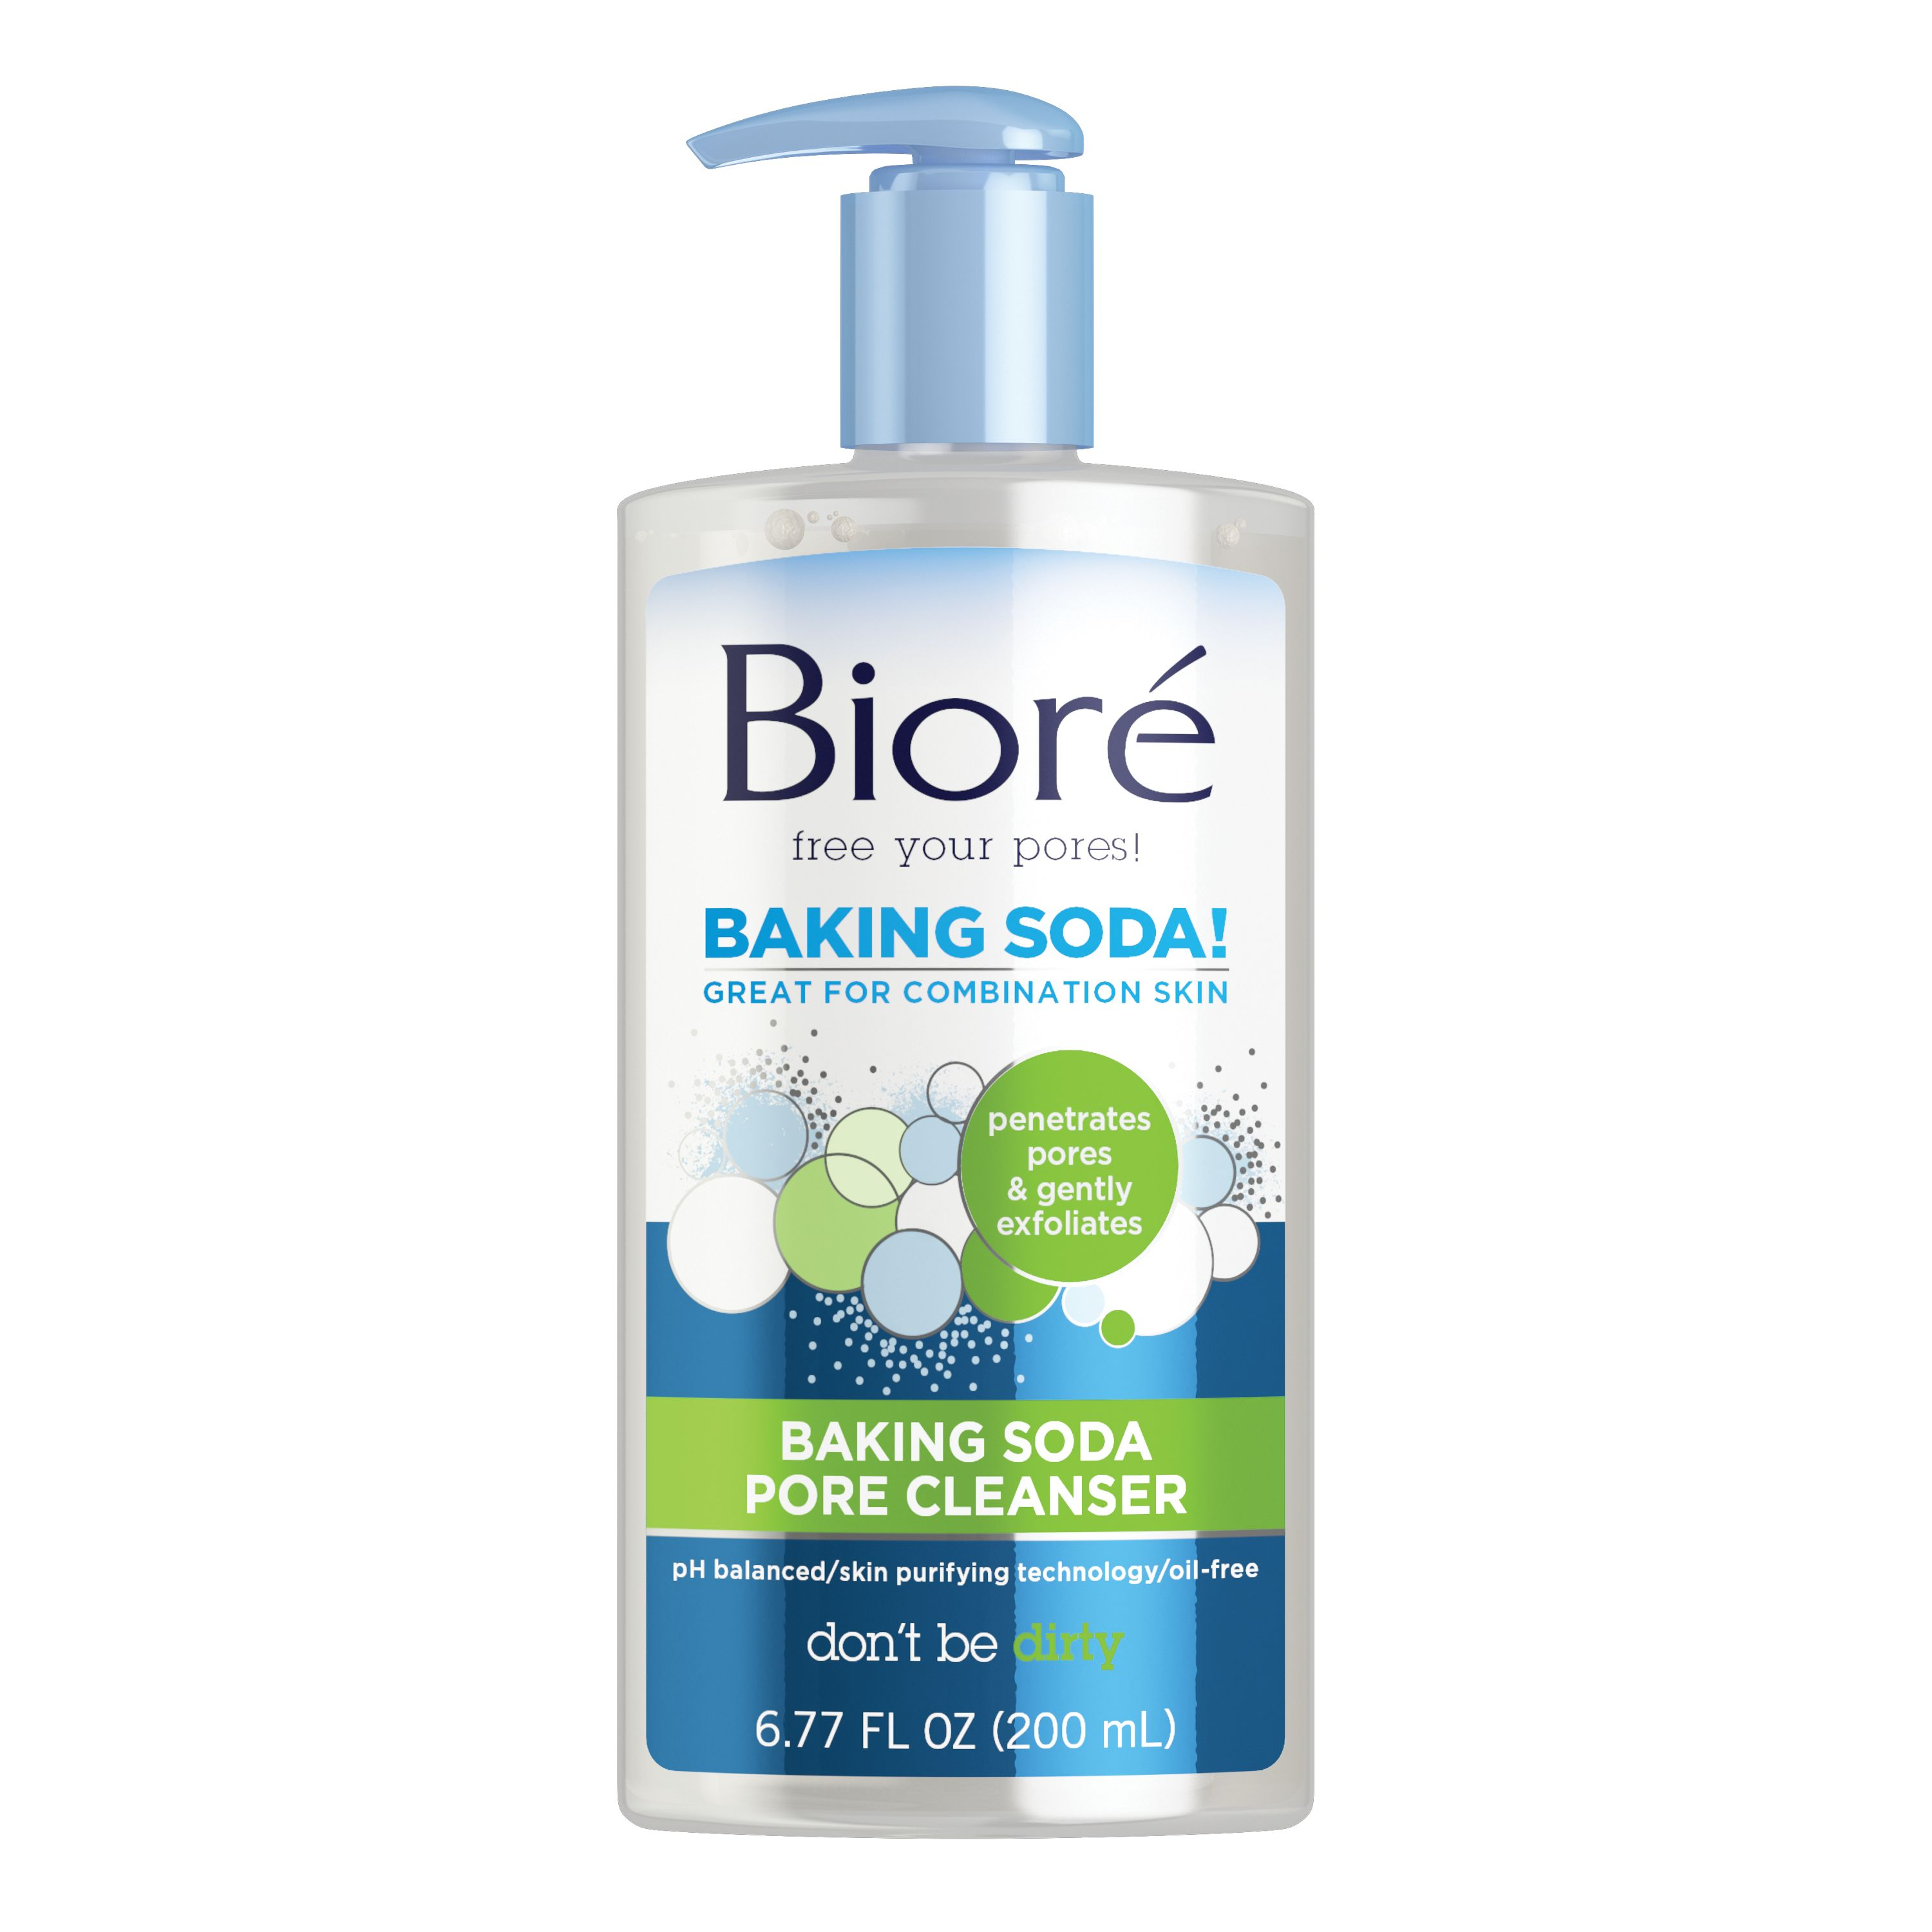 Biore Baking Soda Pore Cleanser For Combination Skin 677 Oz Make Up Remover Cleansing Oil Sheet